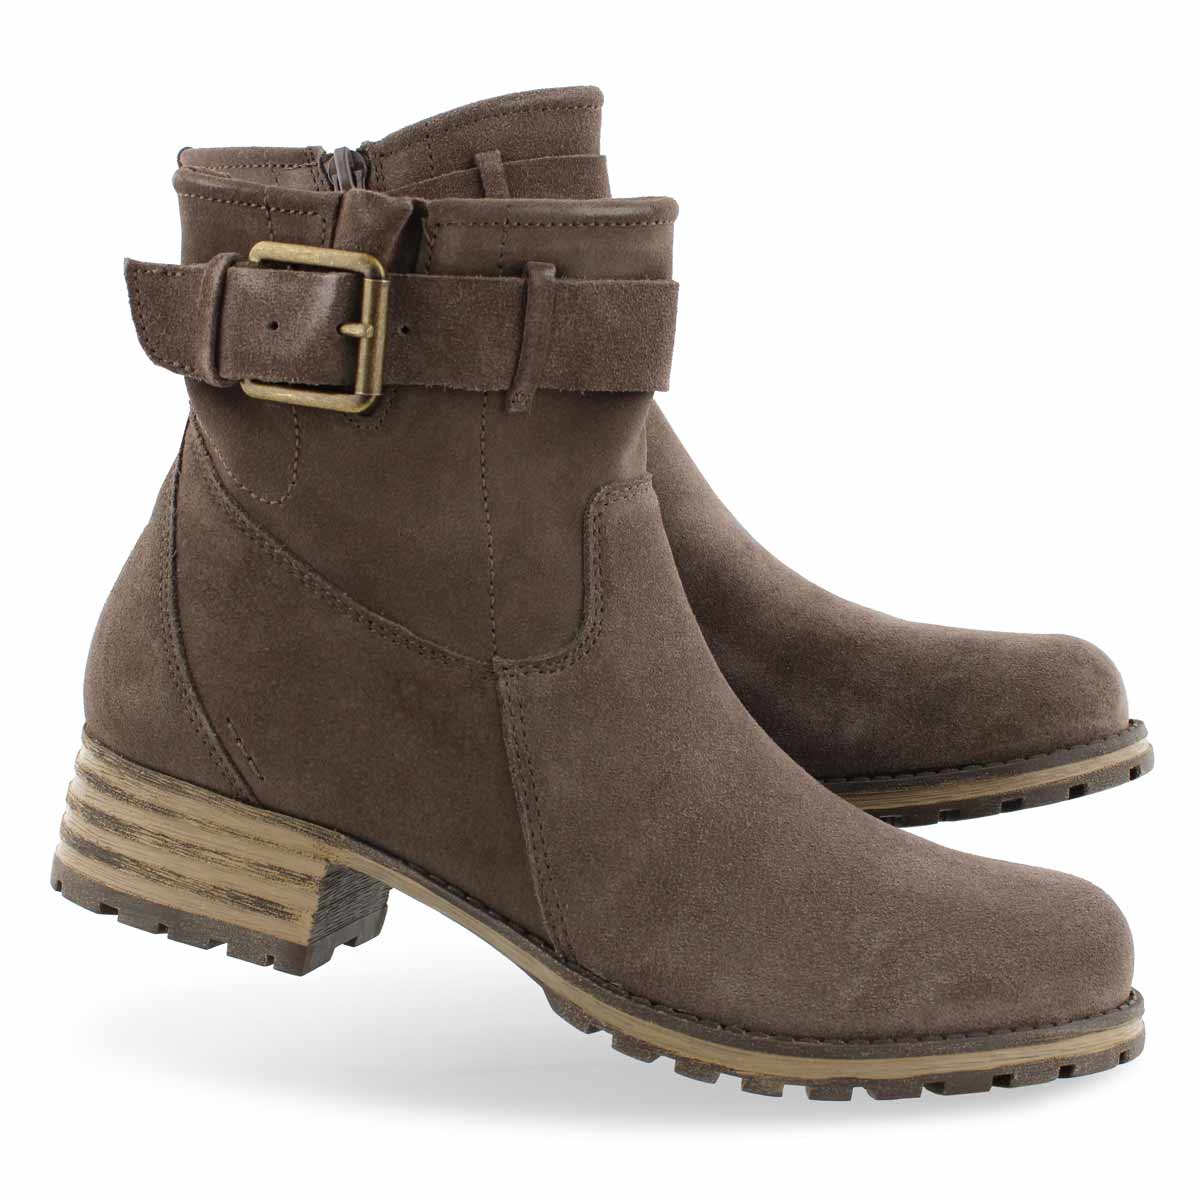 Lds Marana Amber taupe ankle boot